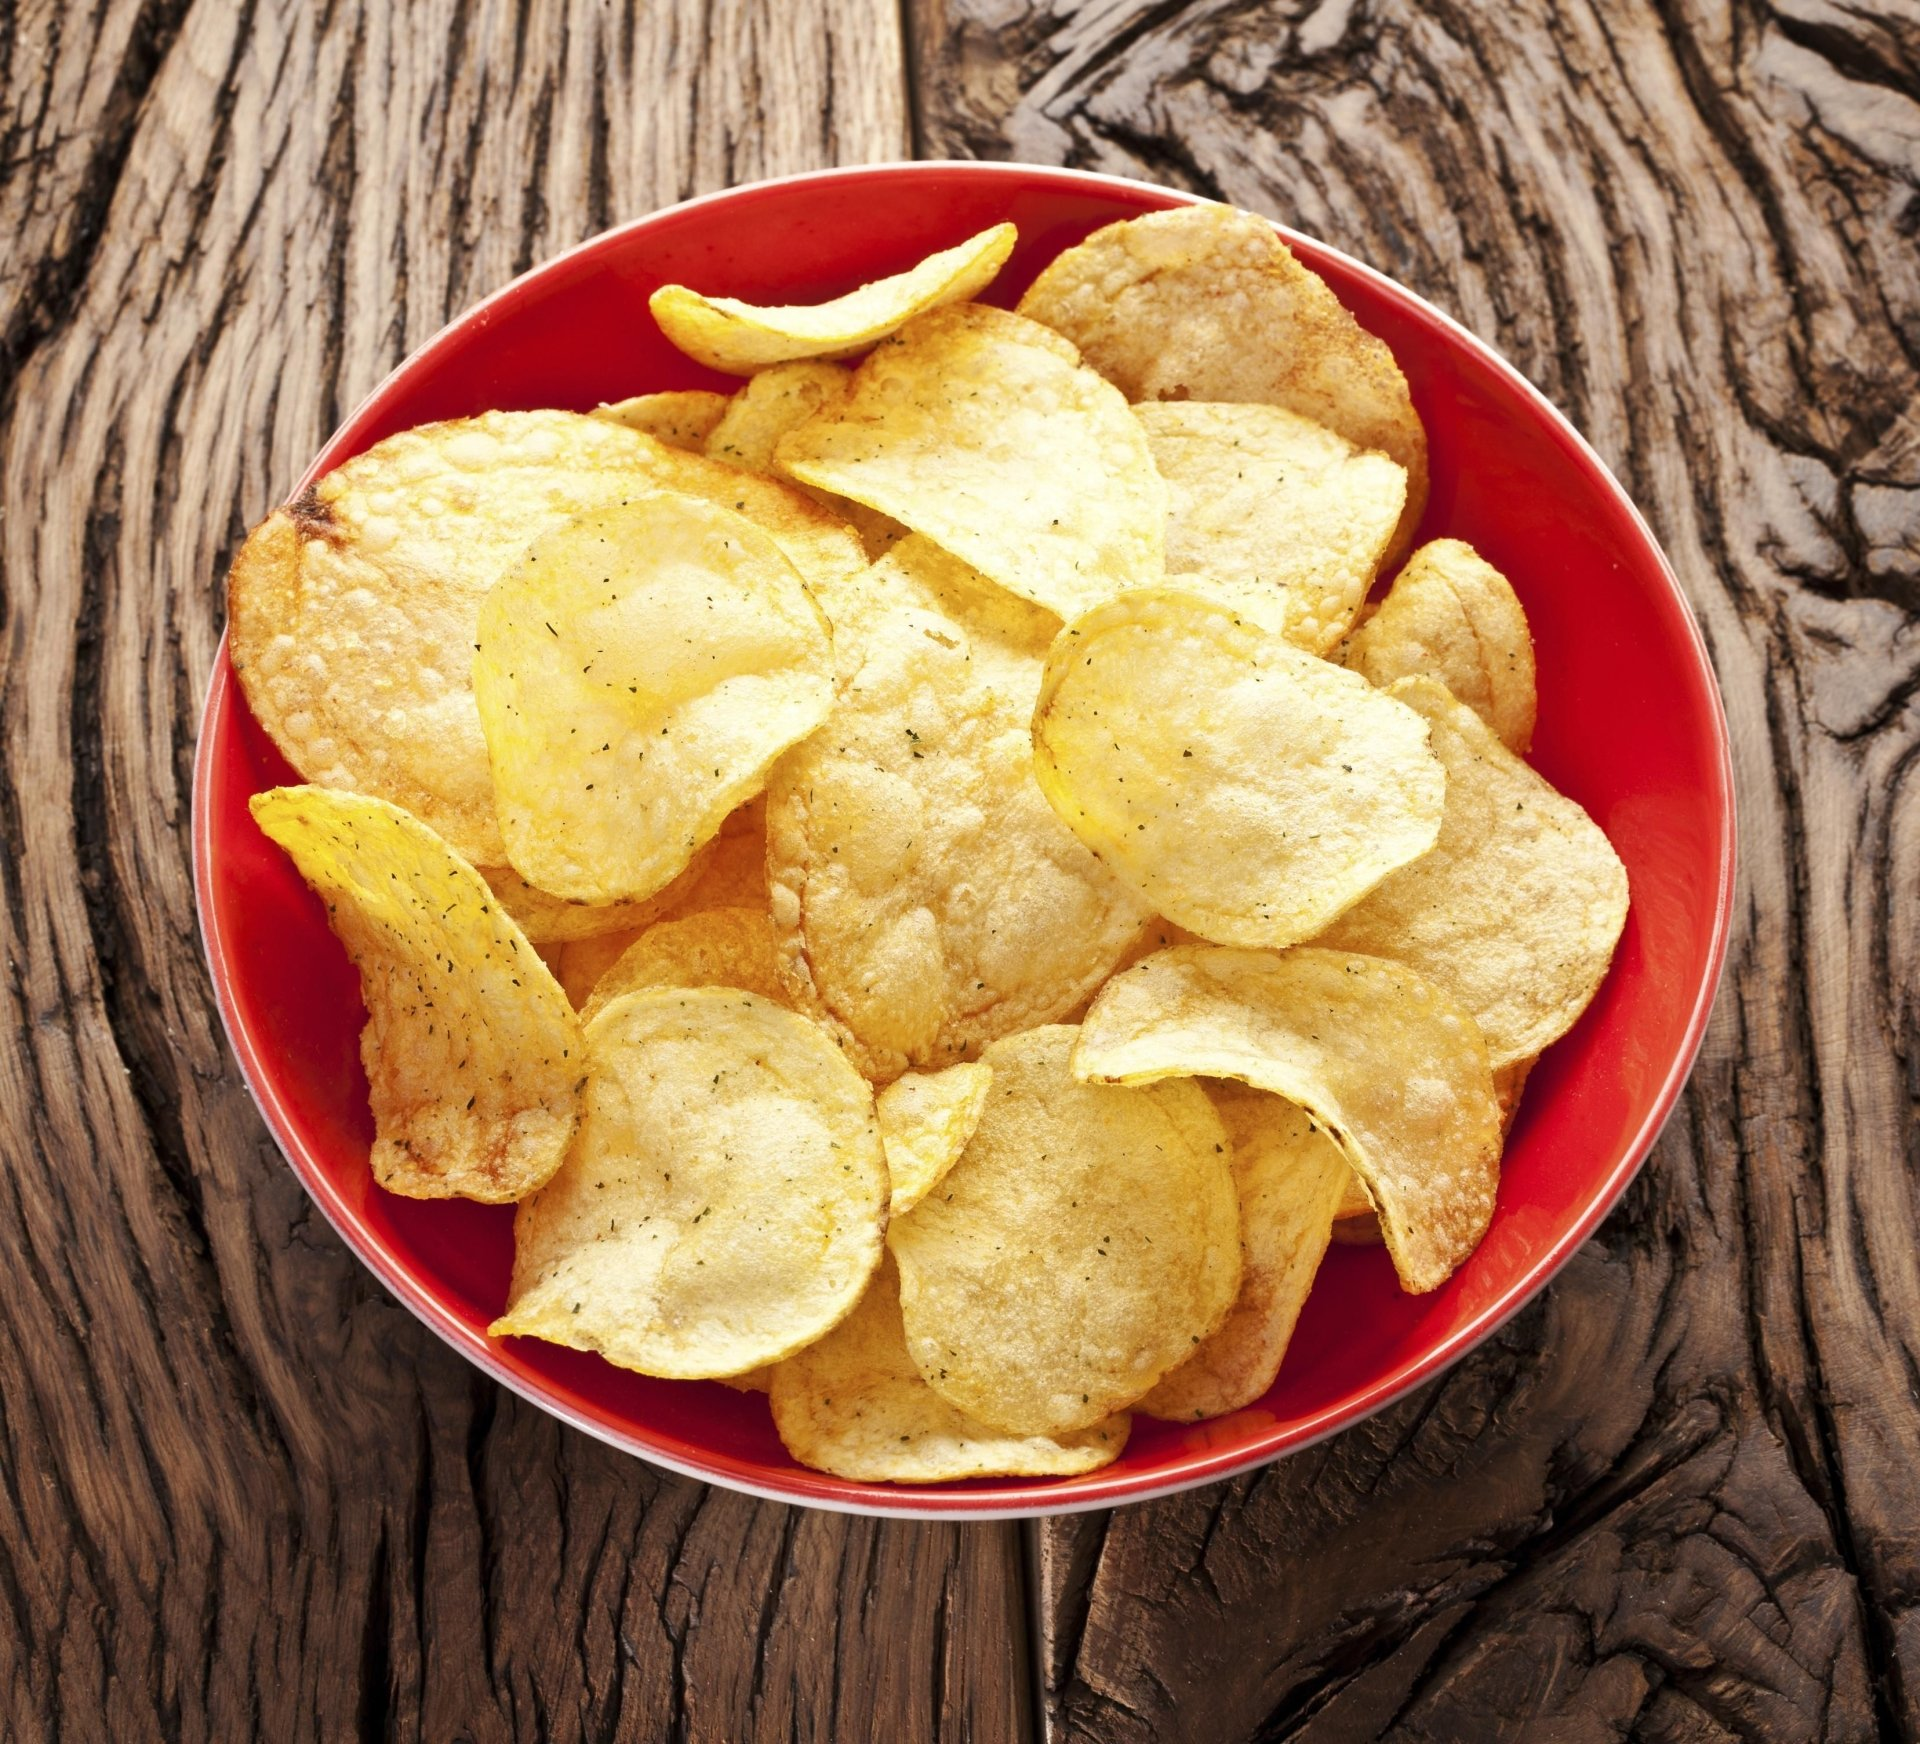 Food - Chips  Potato Chips Snack Wallpaper